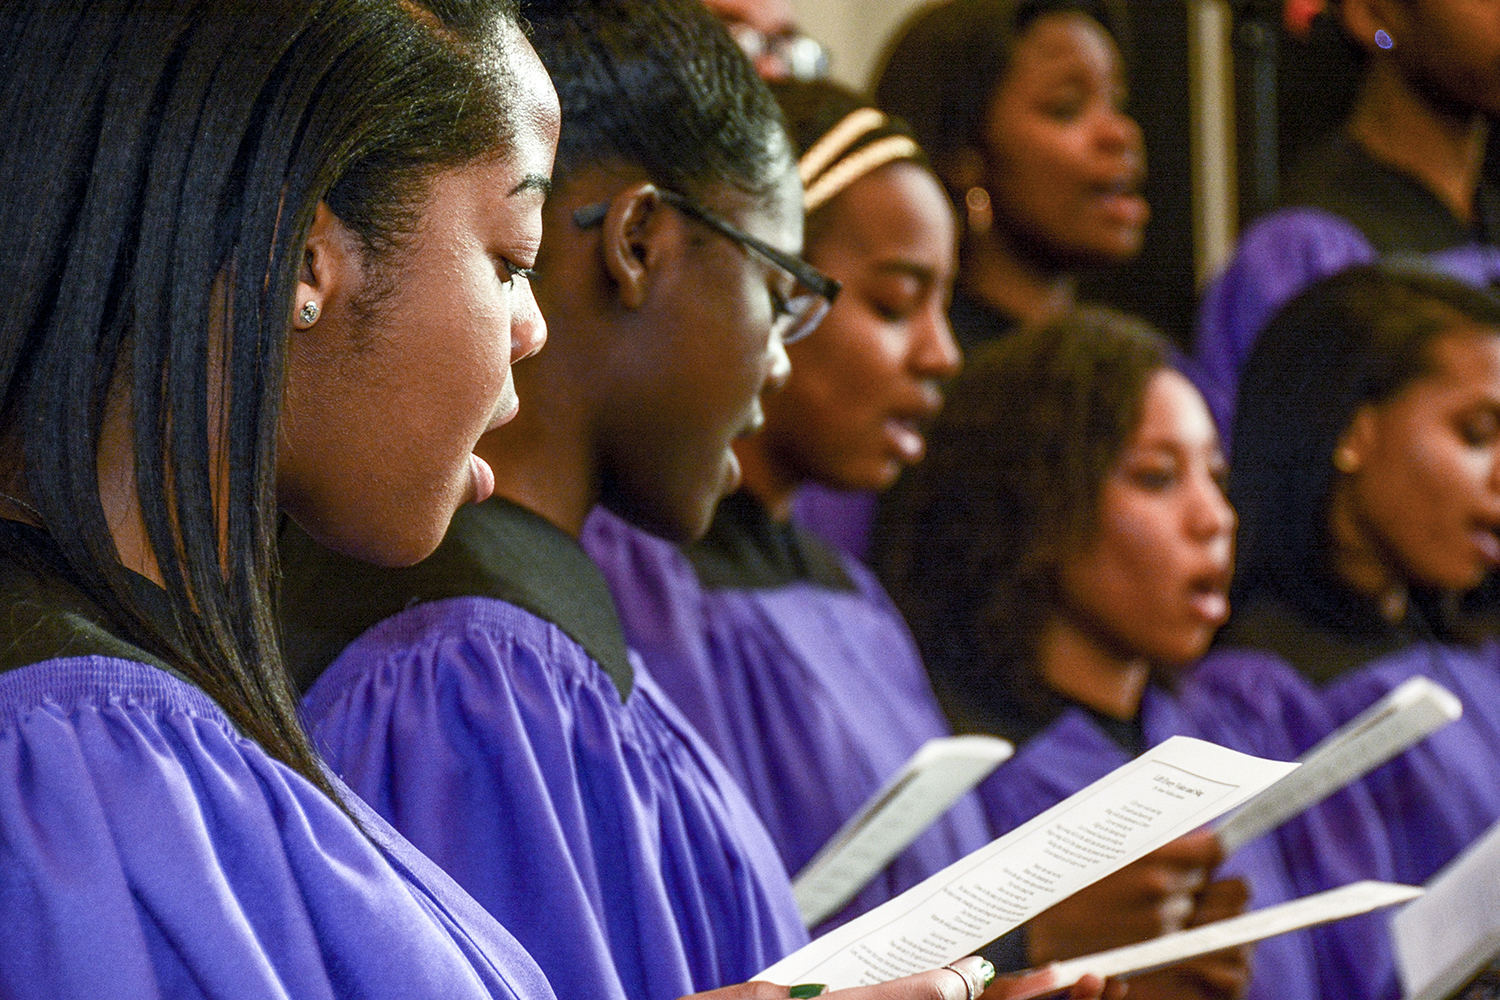 The Genesis Gospel Choir performed at the Black Heritage Service on Sunday.